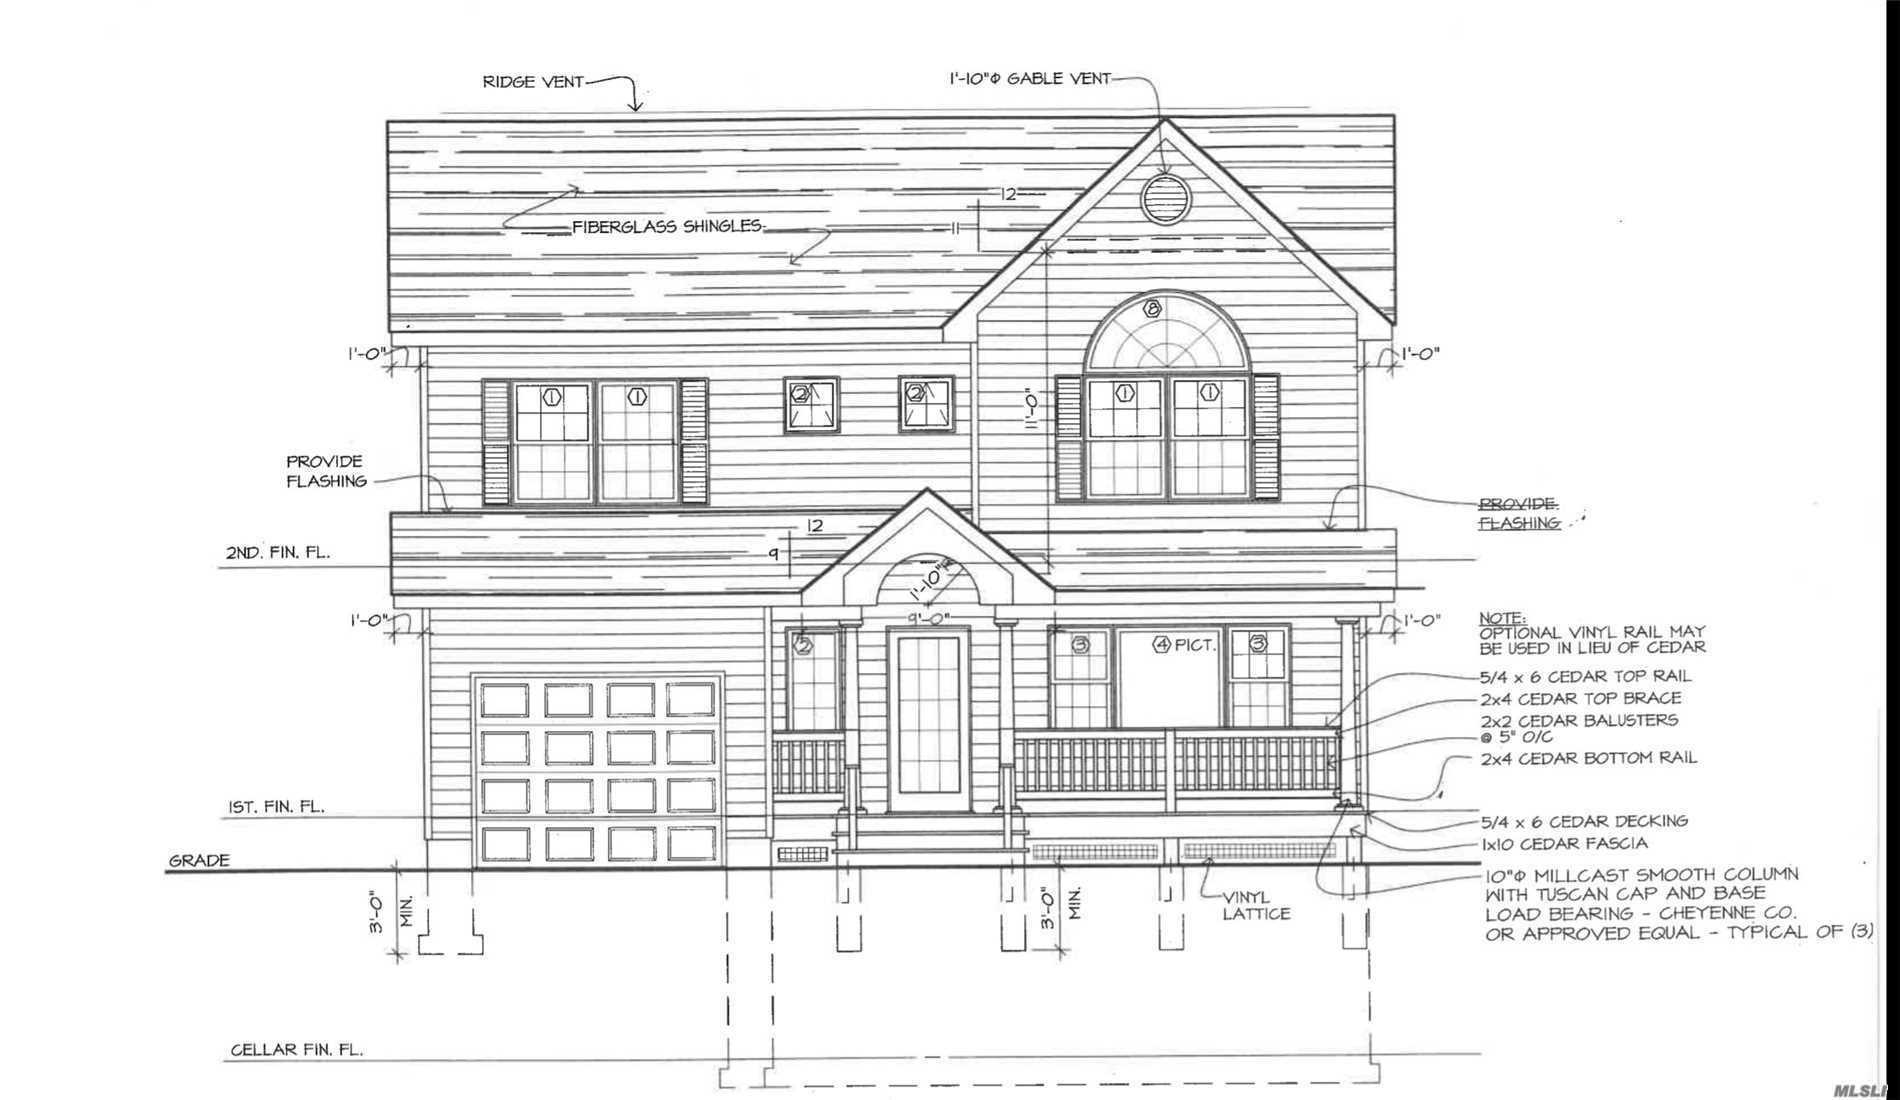 140 Lot A W Clearwater Rd - Lindenhurst, New York